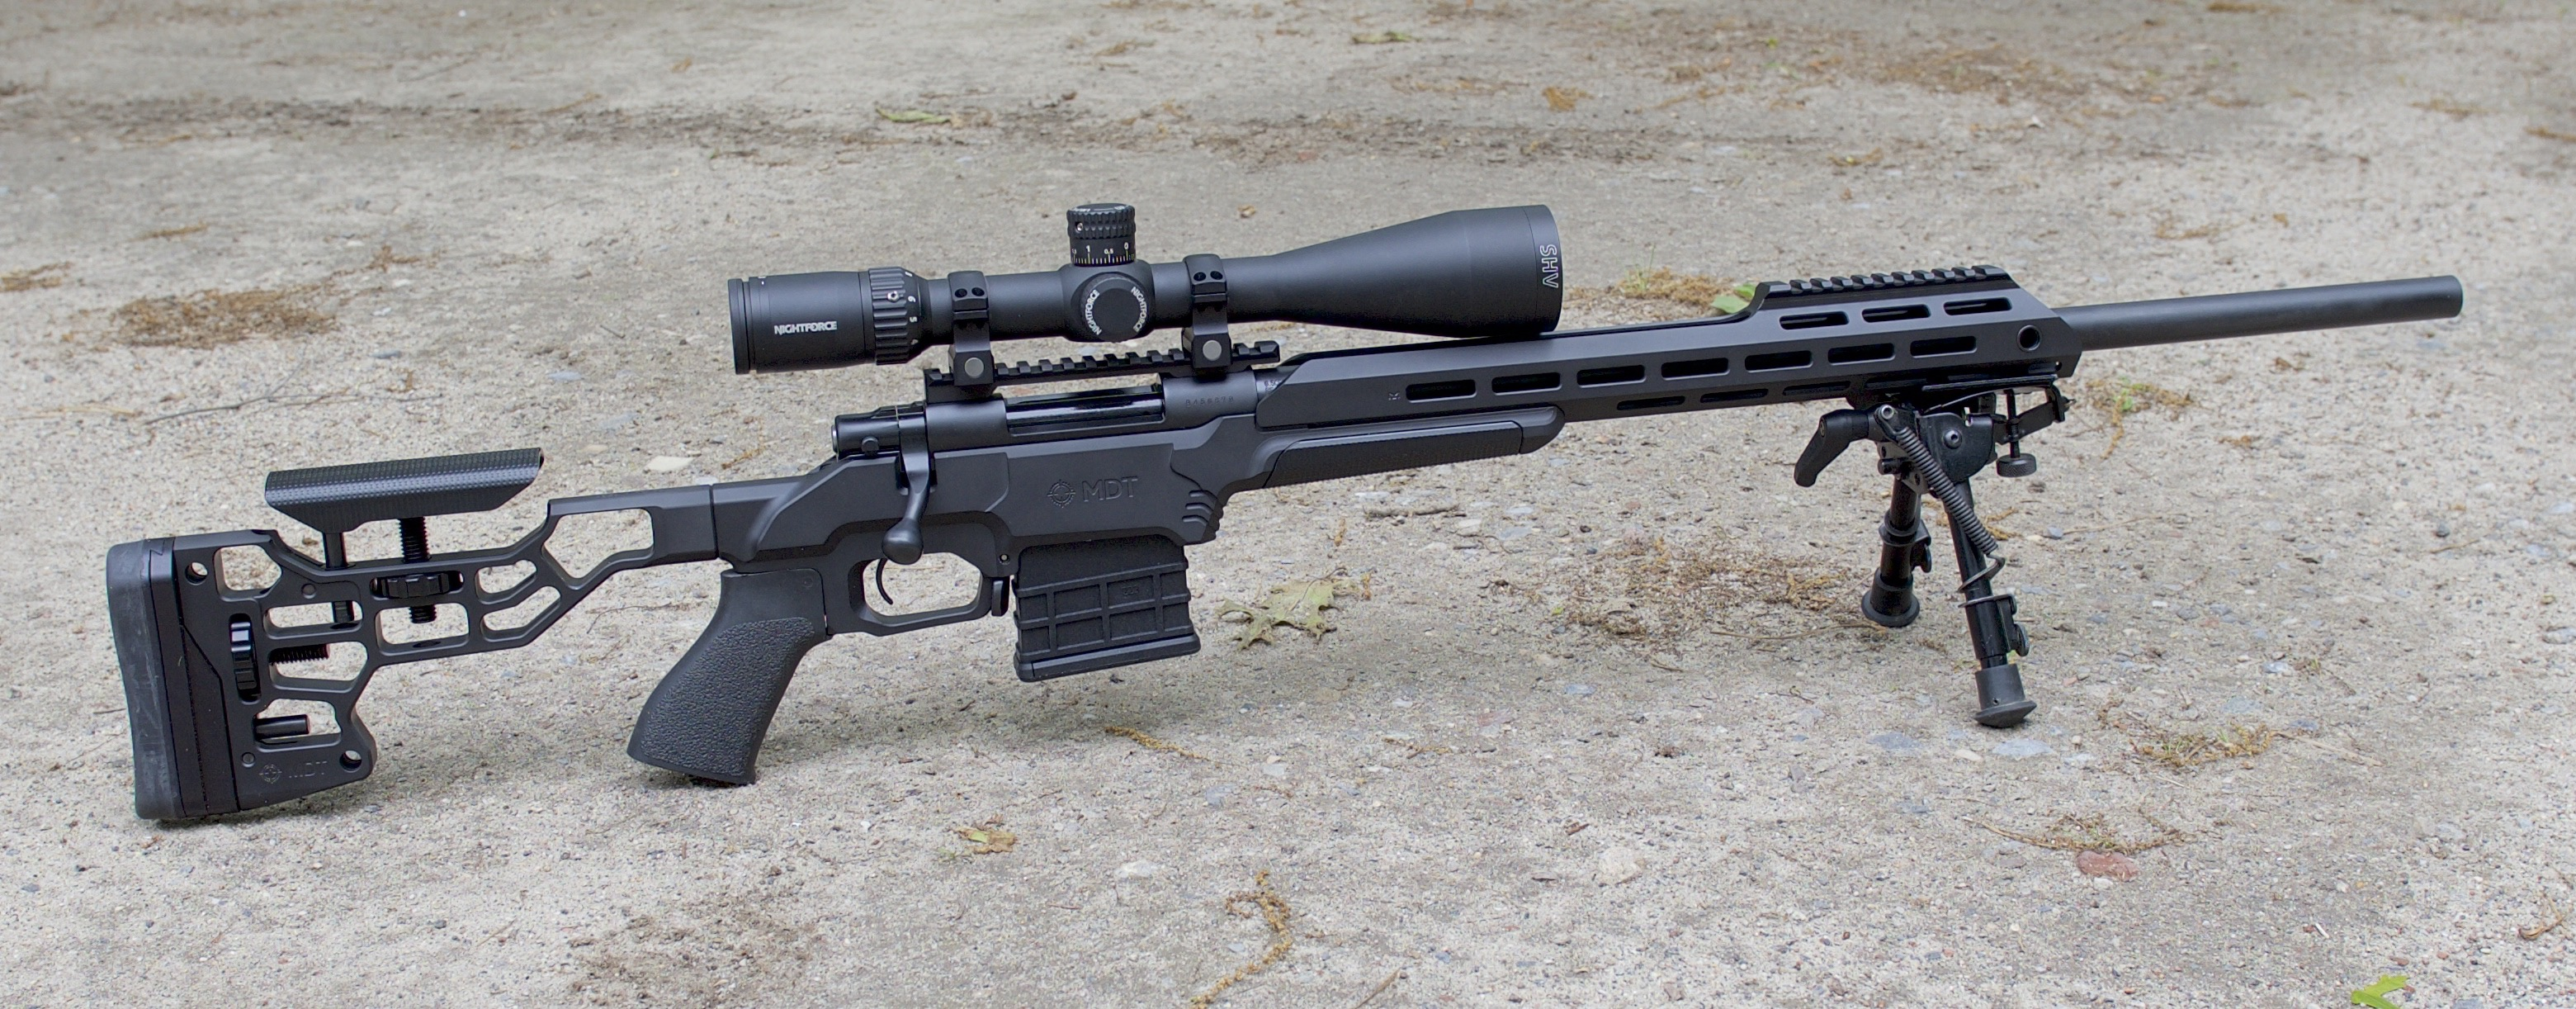 Howa-1500-MDT-ESS-Chassis-6.5-Creed-13.jpg